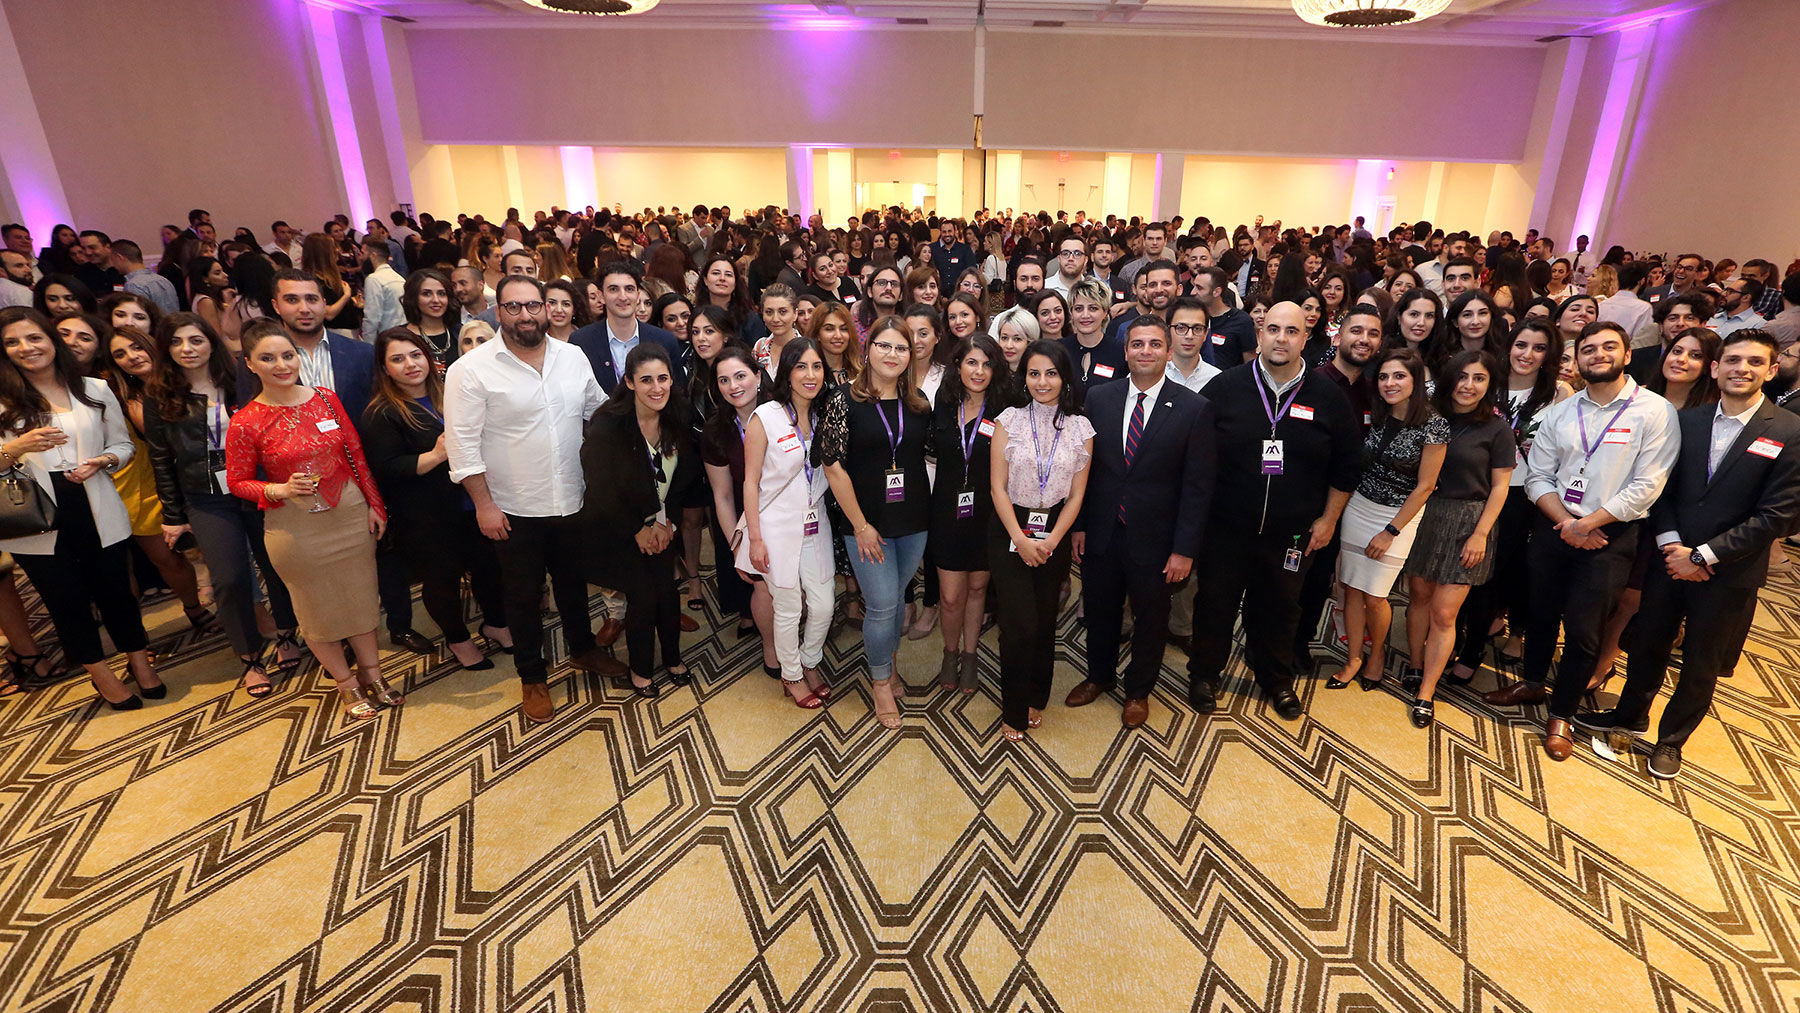 AYP Summer Mixer Benefiting Armenian American Museum with More Than 700 Young Professionals